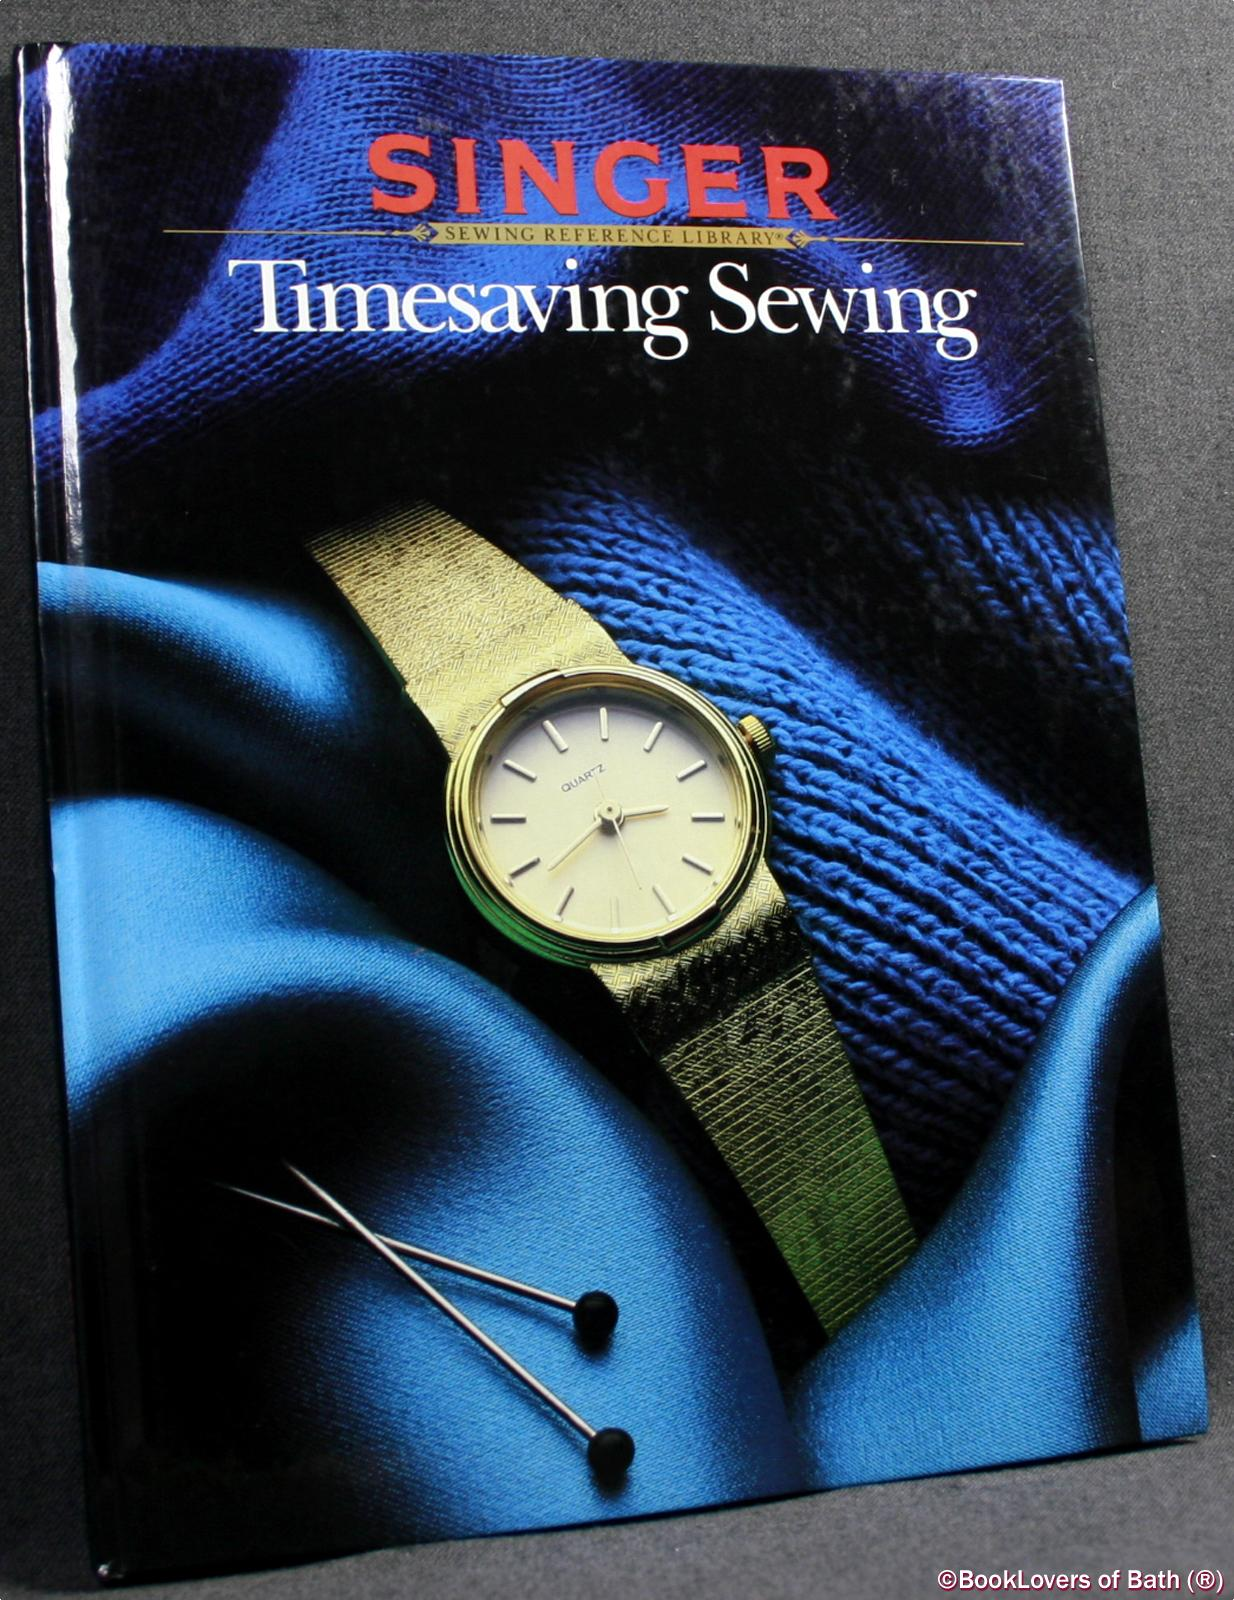 Timesaving Sewing - Edited by Reneé Dignan